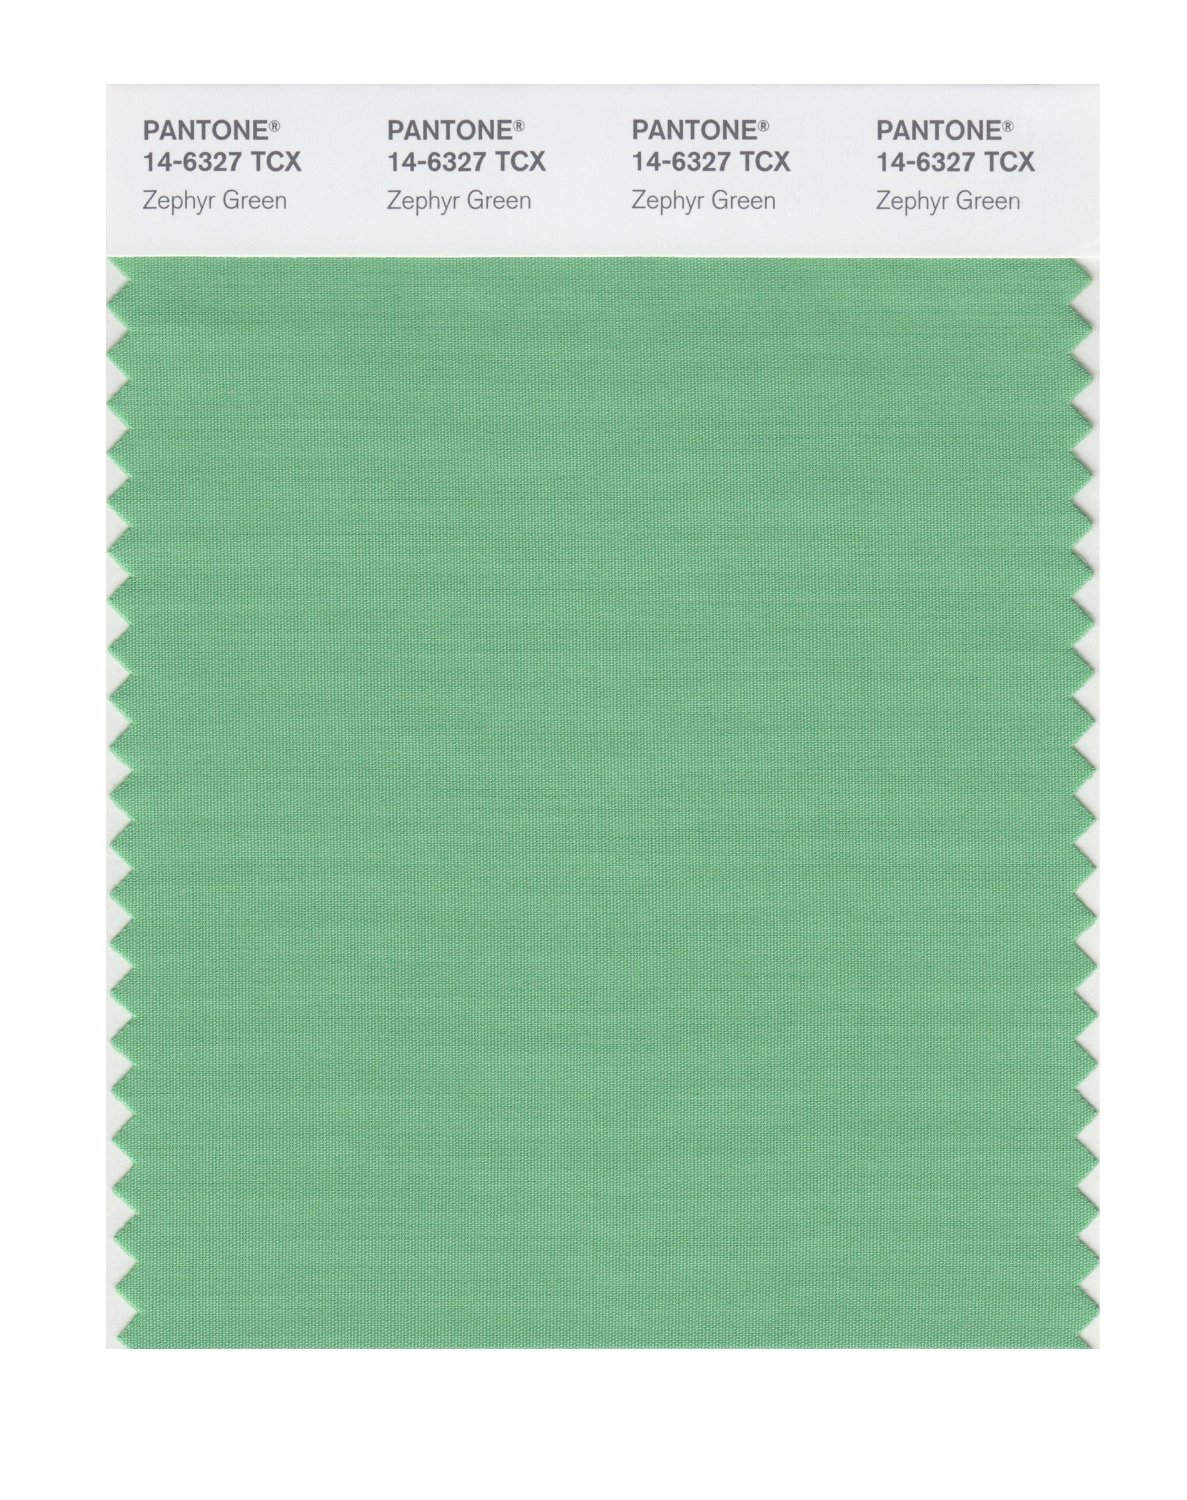 Pantone Smart Swatch 14-6327 Zephyr Green